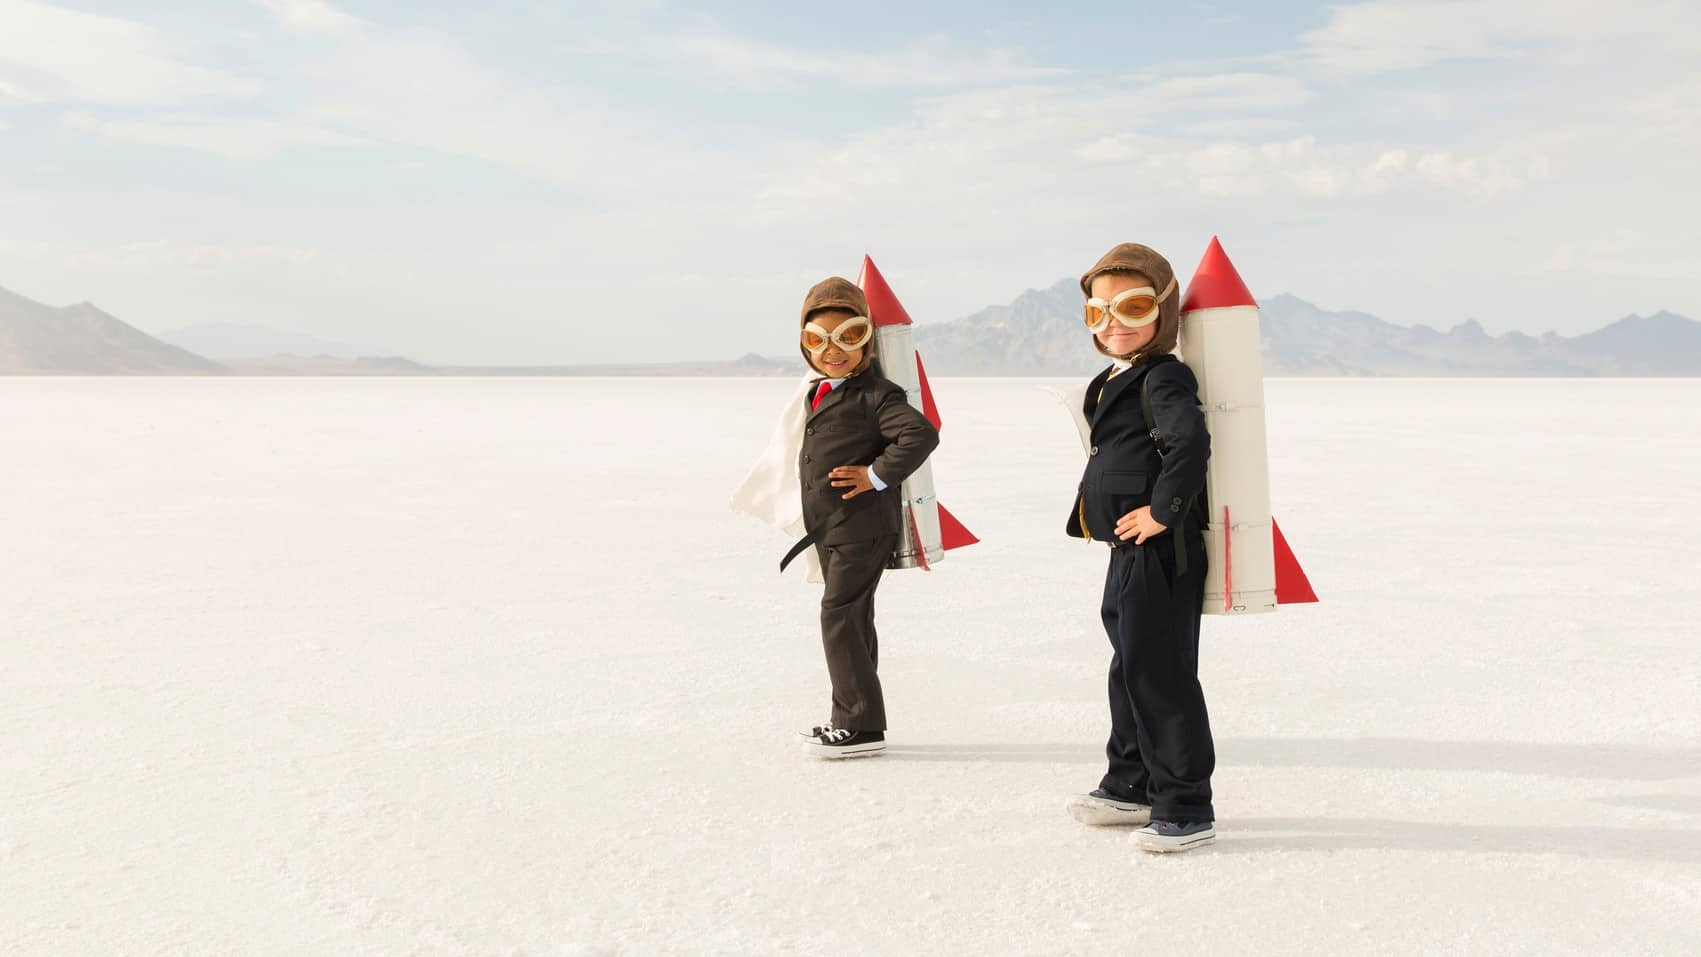 Two boys with cardboard rockets strapped to their backs, indicating two ASX companies with rocketing share prices